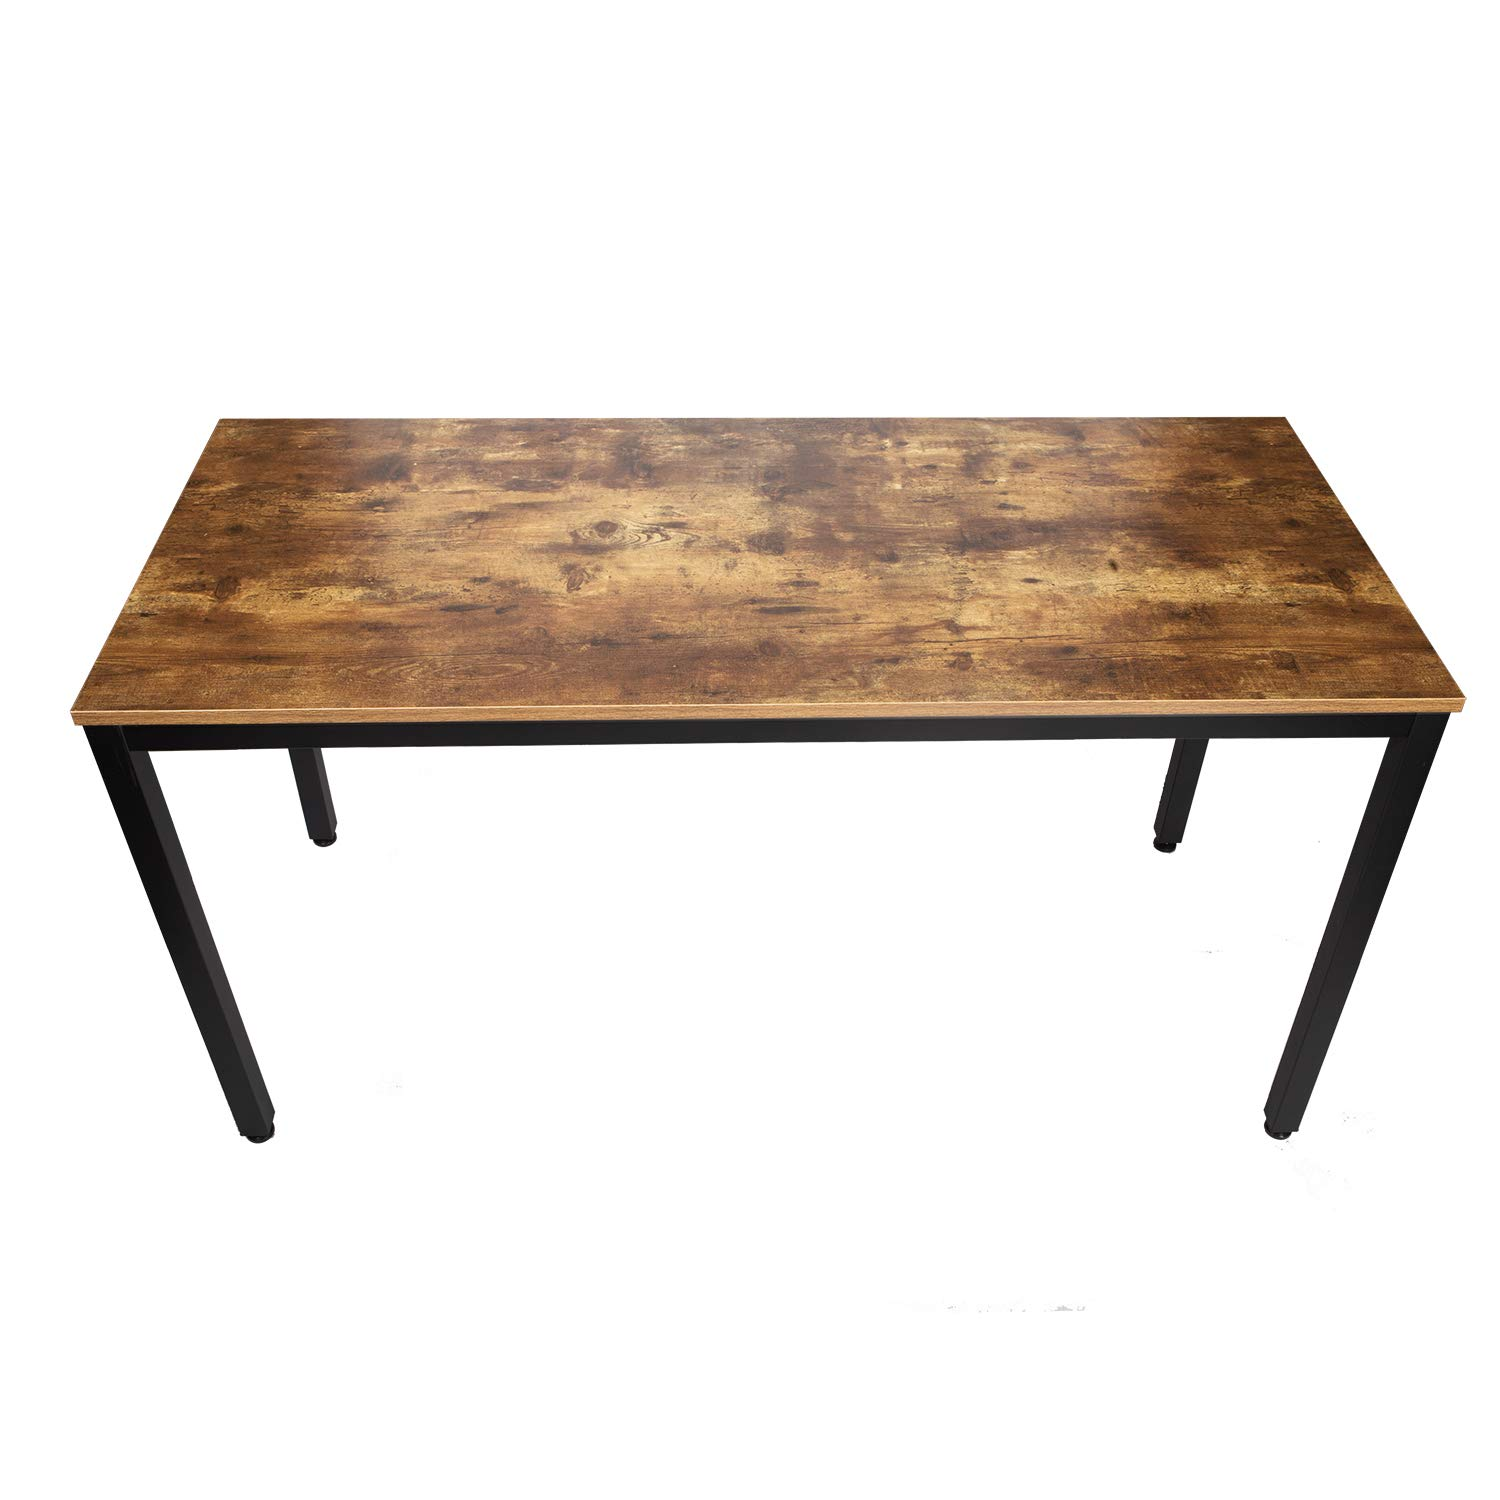 IRONCK Computer Desk, 47'' Office Desk with 0.7'' Thicker Tabletop 1.6'' Sturdy Metal Frame, Simple Study Table, Industrial Style Desk for Home Office, Matt Brown by IRONCK (Image #8)